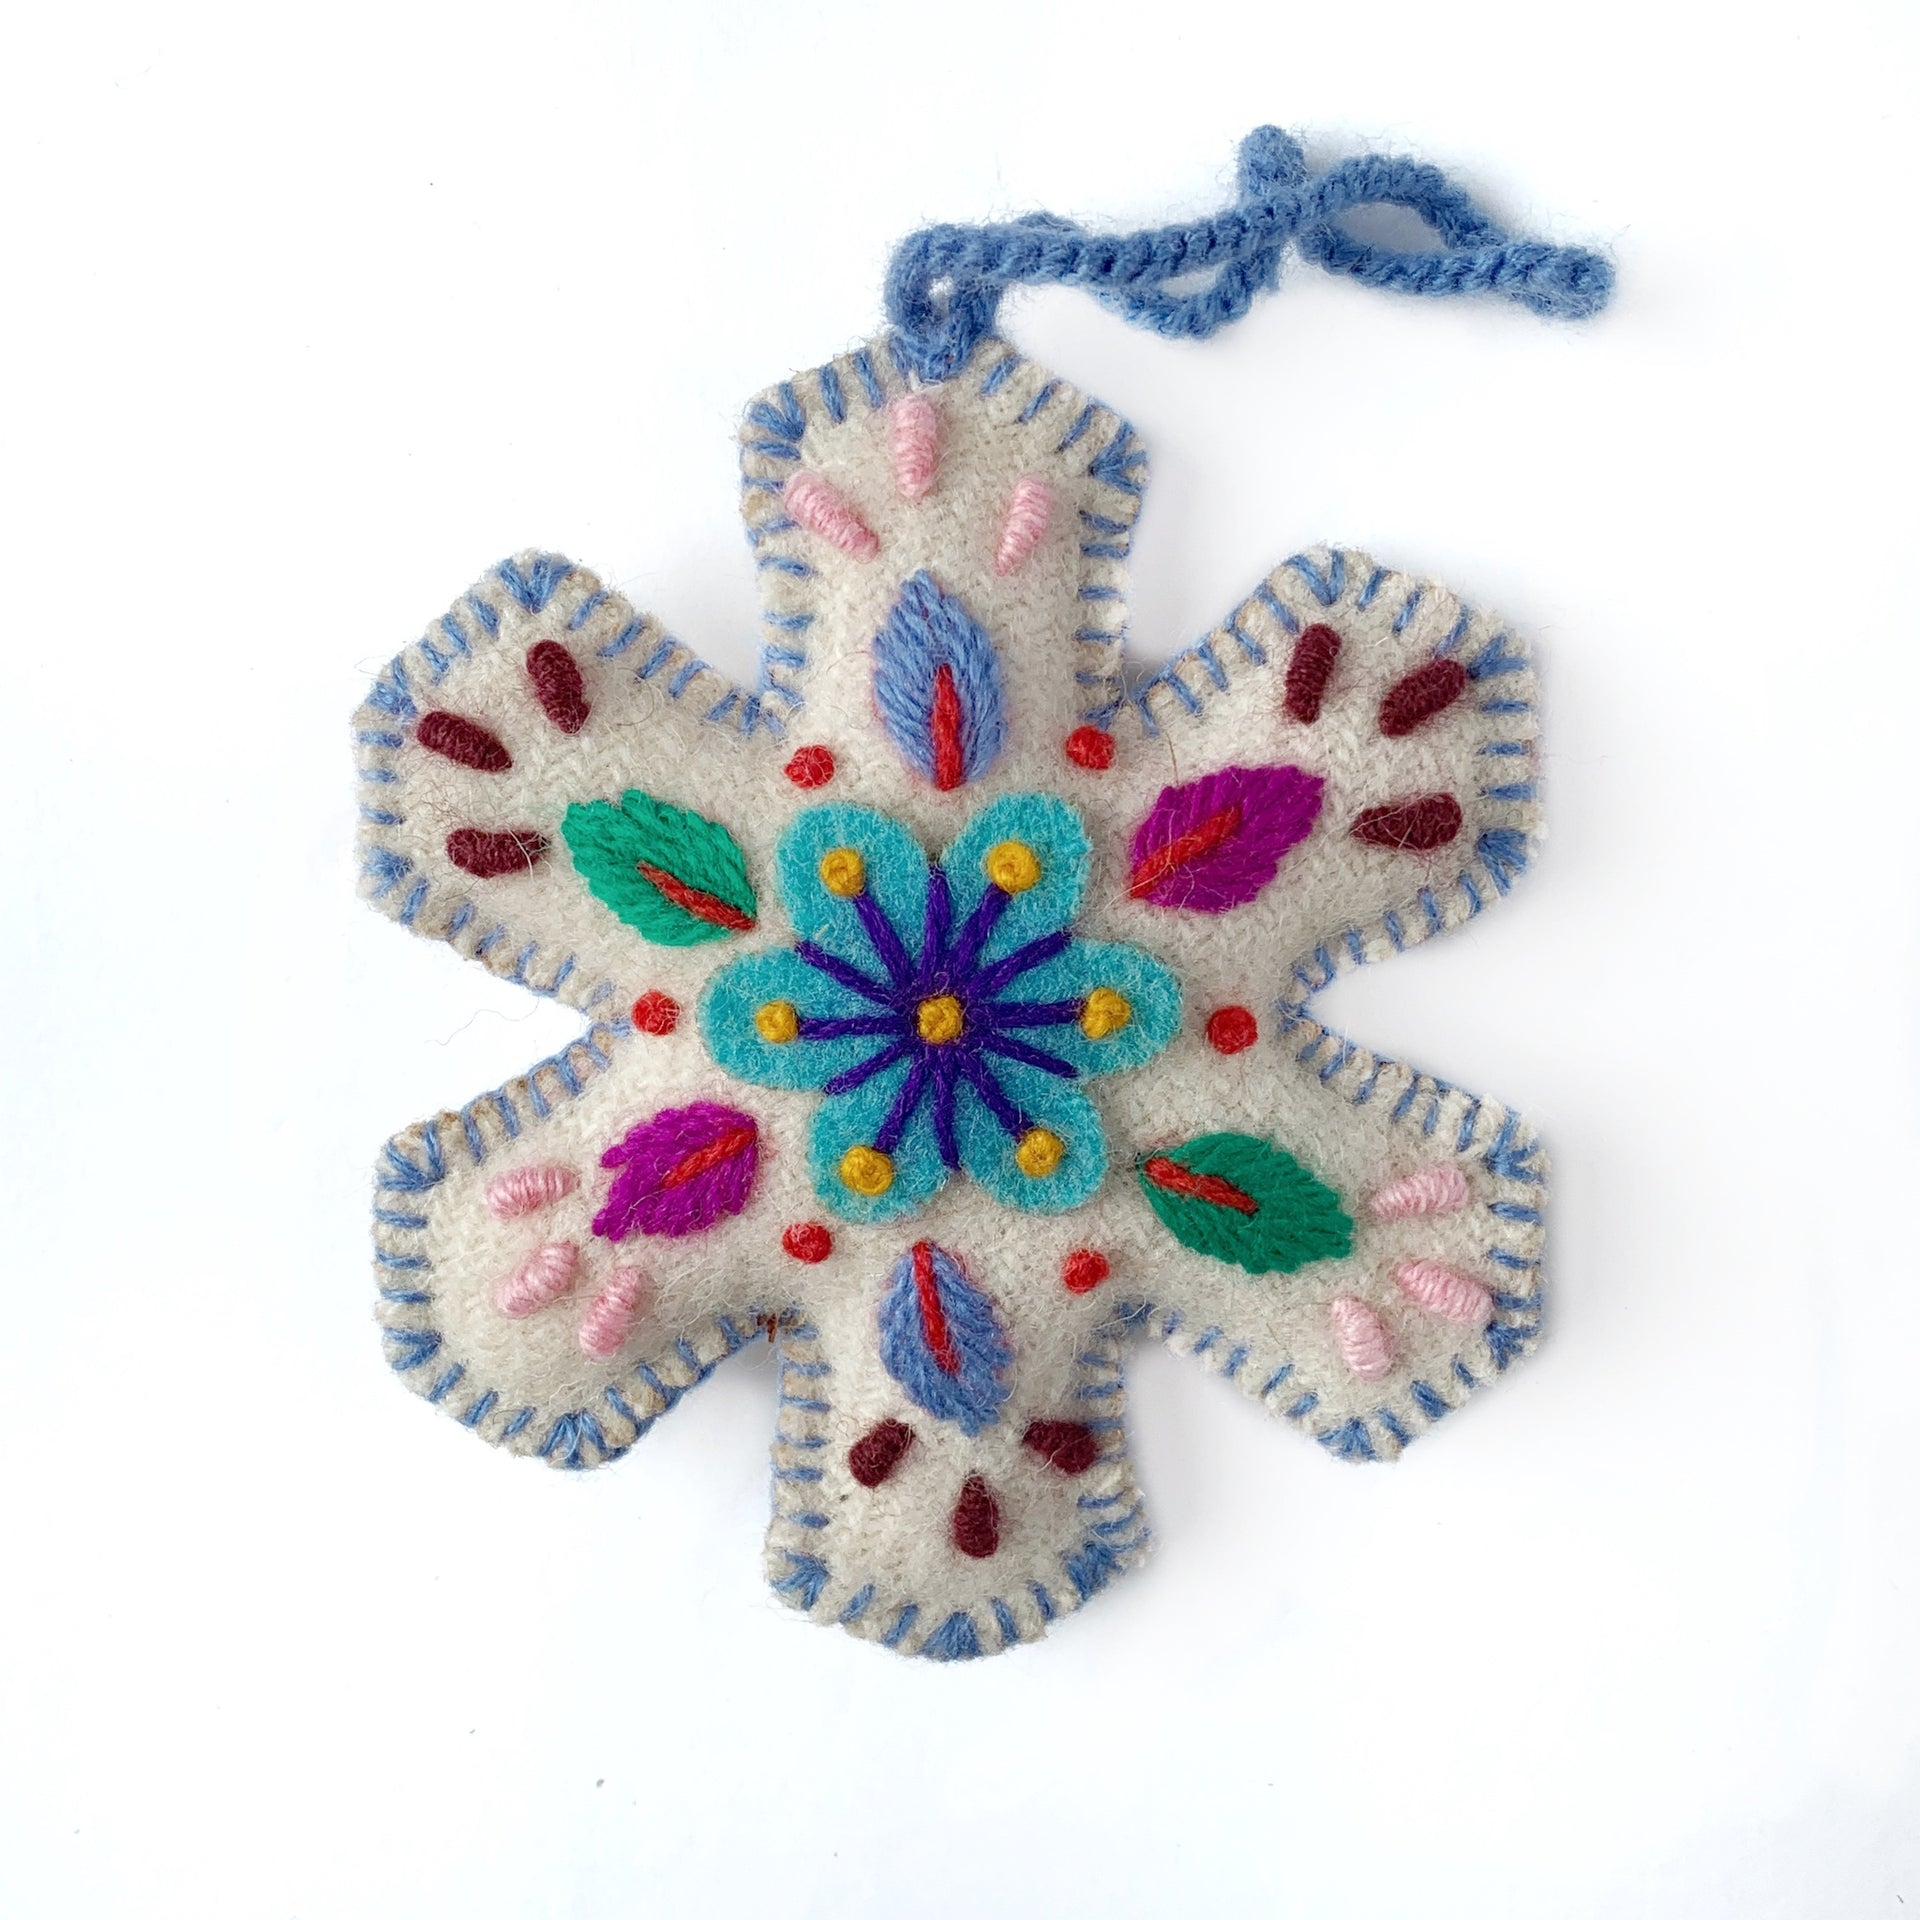 Embroidered Snowflake Ornament Periwinkle Handmade Peru